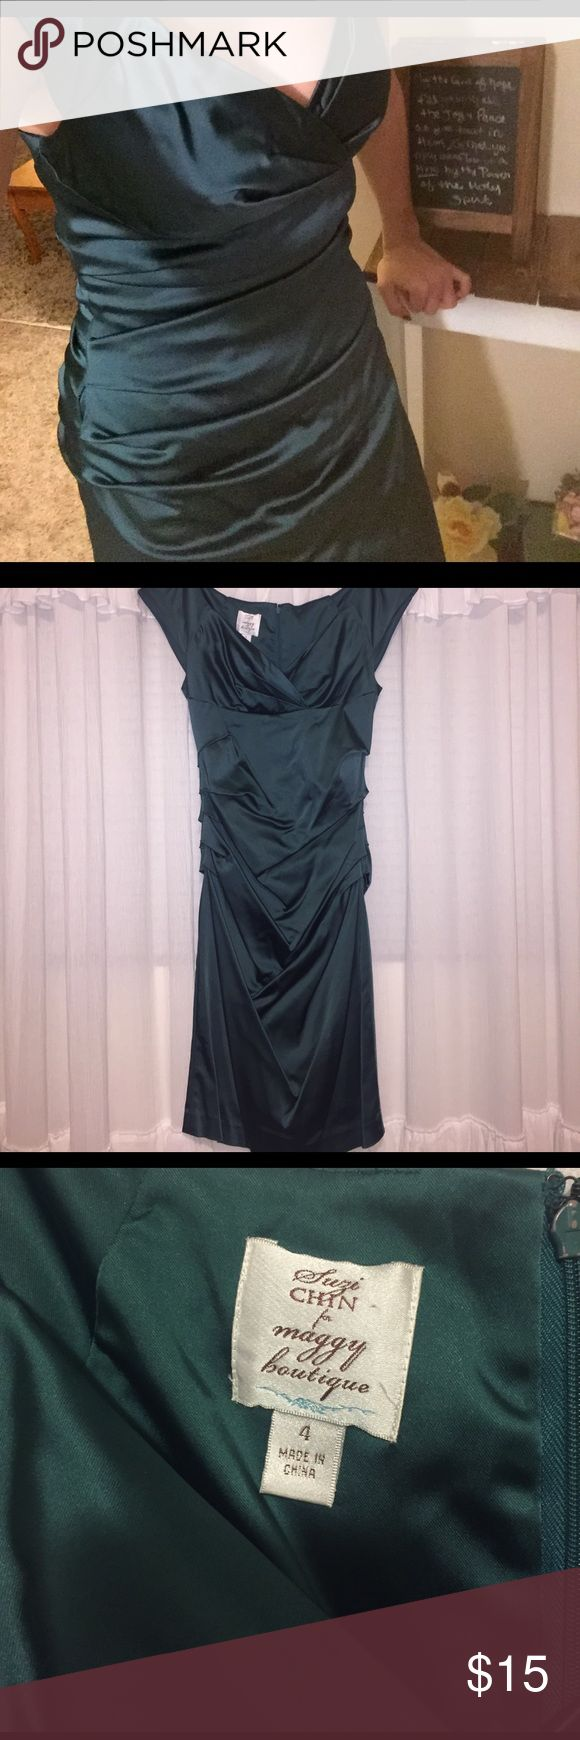 Suzi Chin for Maggy Boutique Cocktail Dress Beautiful green vintage style cocktail dress. I wore it to a Christmas party once and it's been hanging in my closet since. No flaws to note, but needs a good steaming or dry clean. Size 4, but can fit a larger bust. I'm a 32D and there was still room in the chest area. 💕Bundle and save 25%! Free shipping on orders over $30 (after discount). Just use the offer button to subtract $7 from your total! 💕 Suzi Chin for Maggy Boutique Dresses